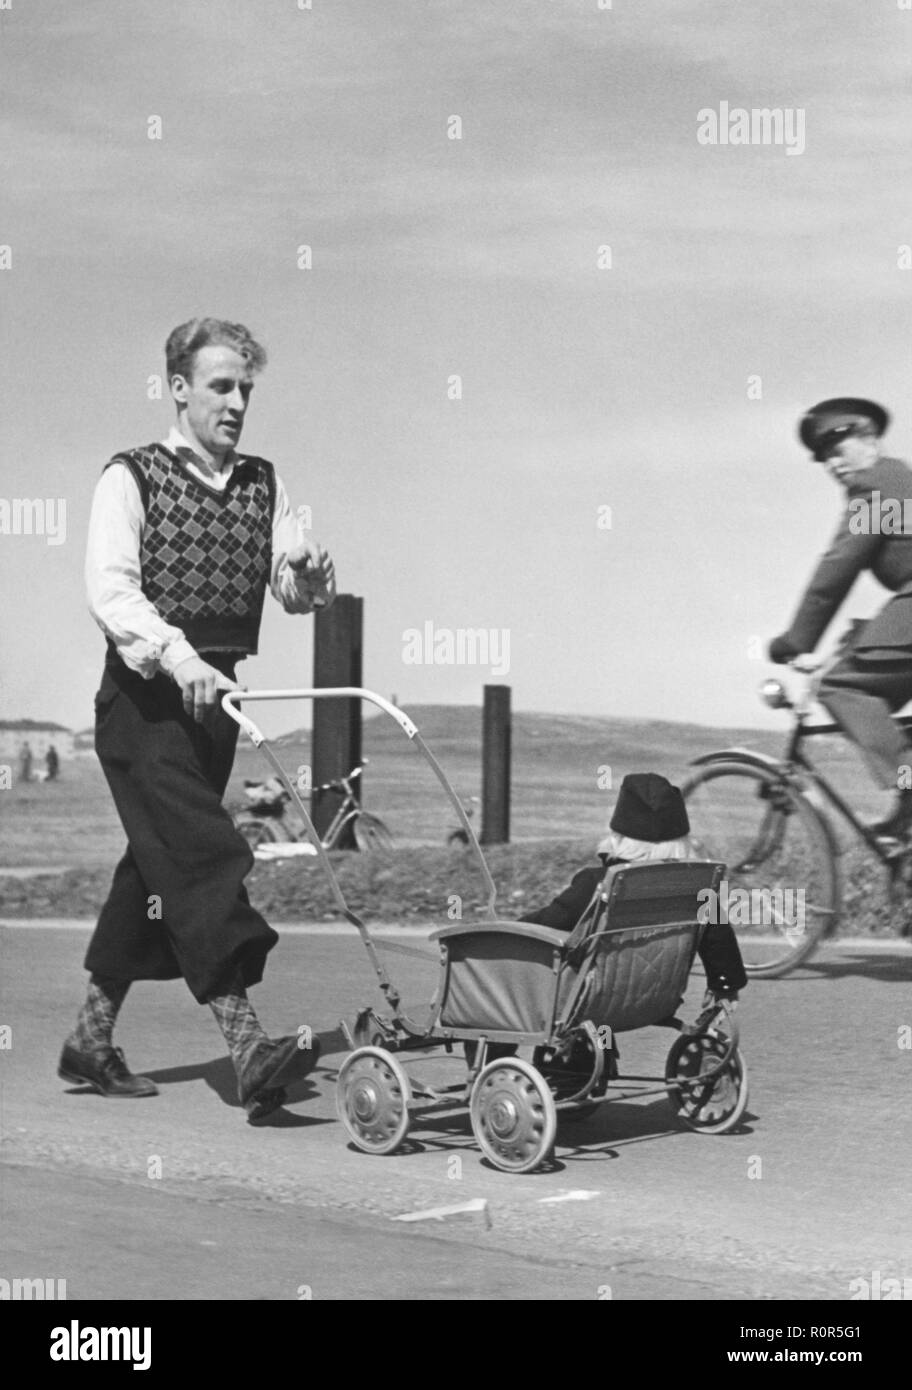 Father and child in the 1940s. A man wearing typical 1940s trouser fashion is pushing a stroller with his child in it. He is marching for a charity event 1942 - Stock Image